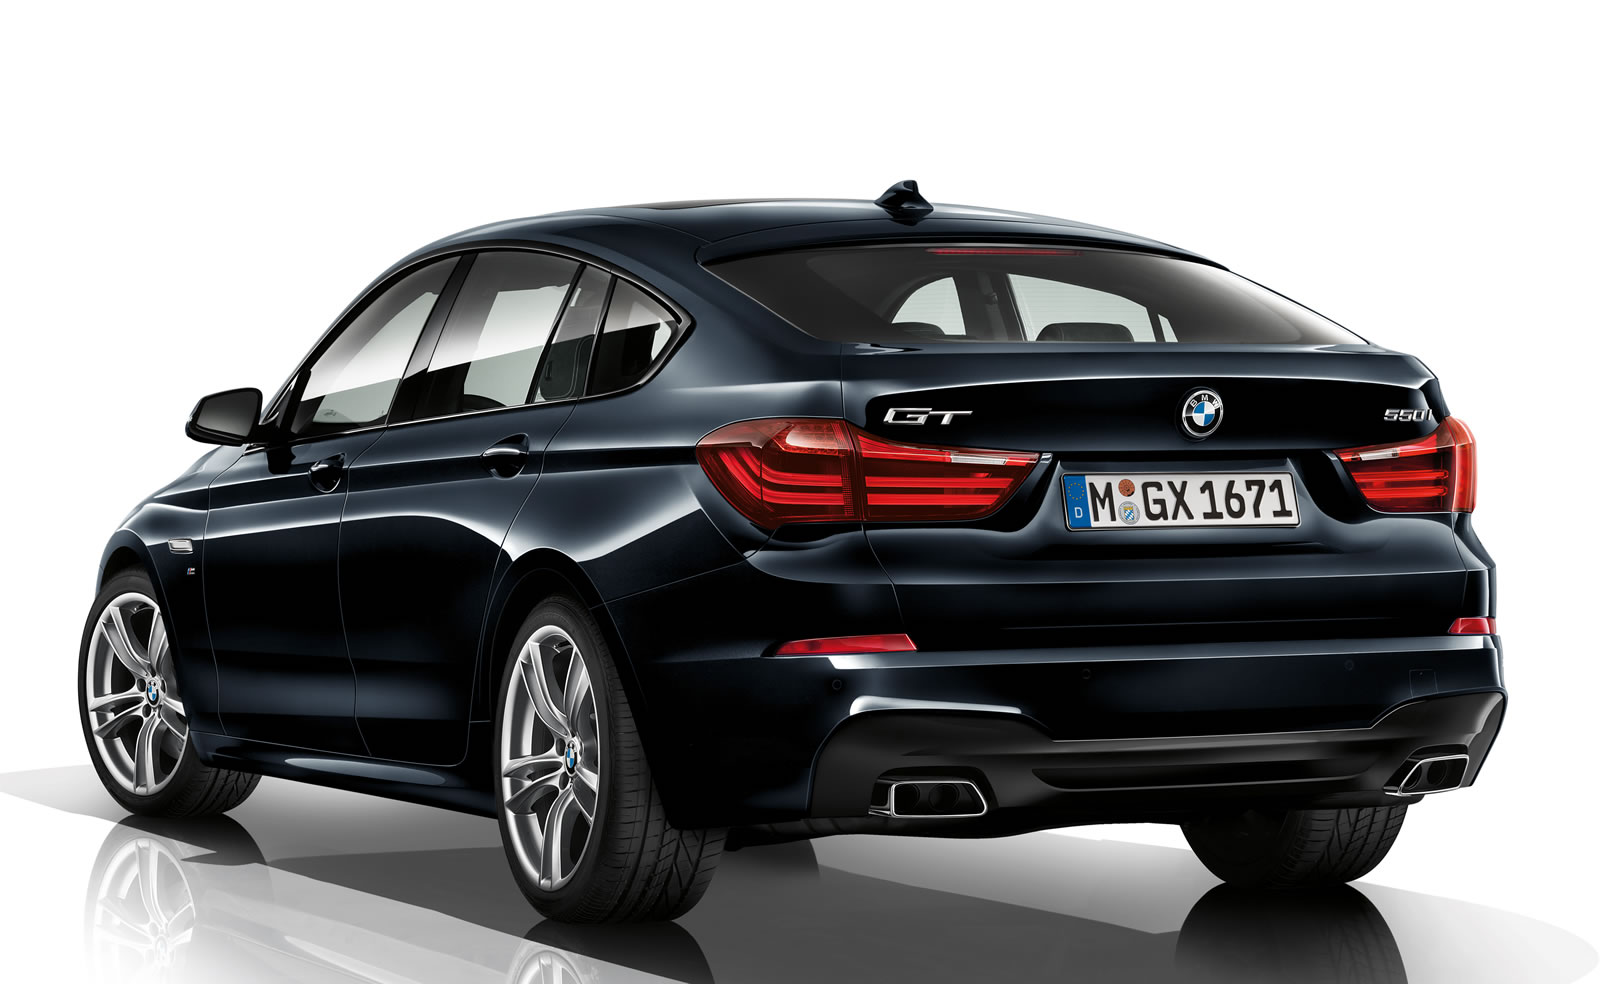 2014 bmw 5 series gran turismo information and photos zombiedrive. Black Bedroom Furniture Sets. Home Design Ideas